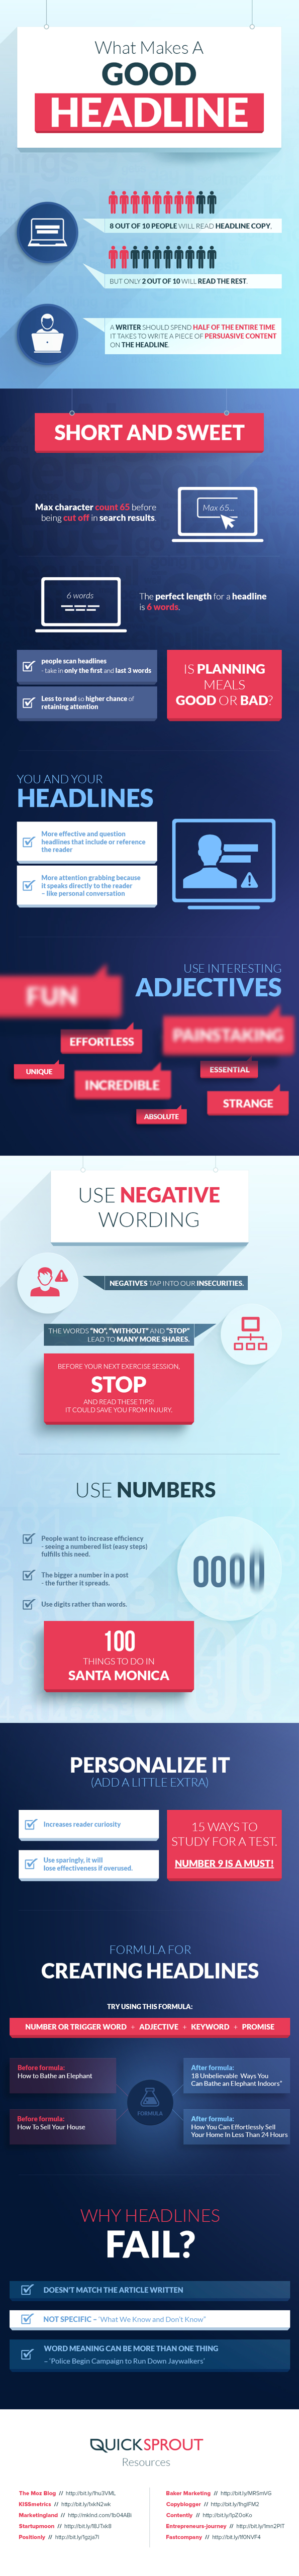 How to Write Headlines That Convert Infographic image